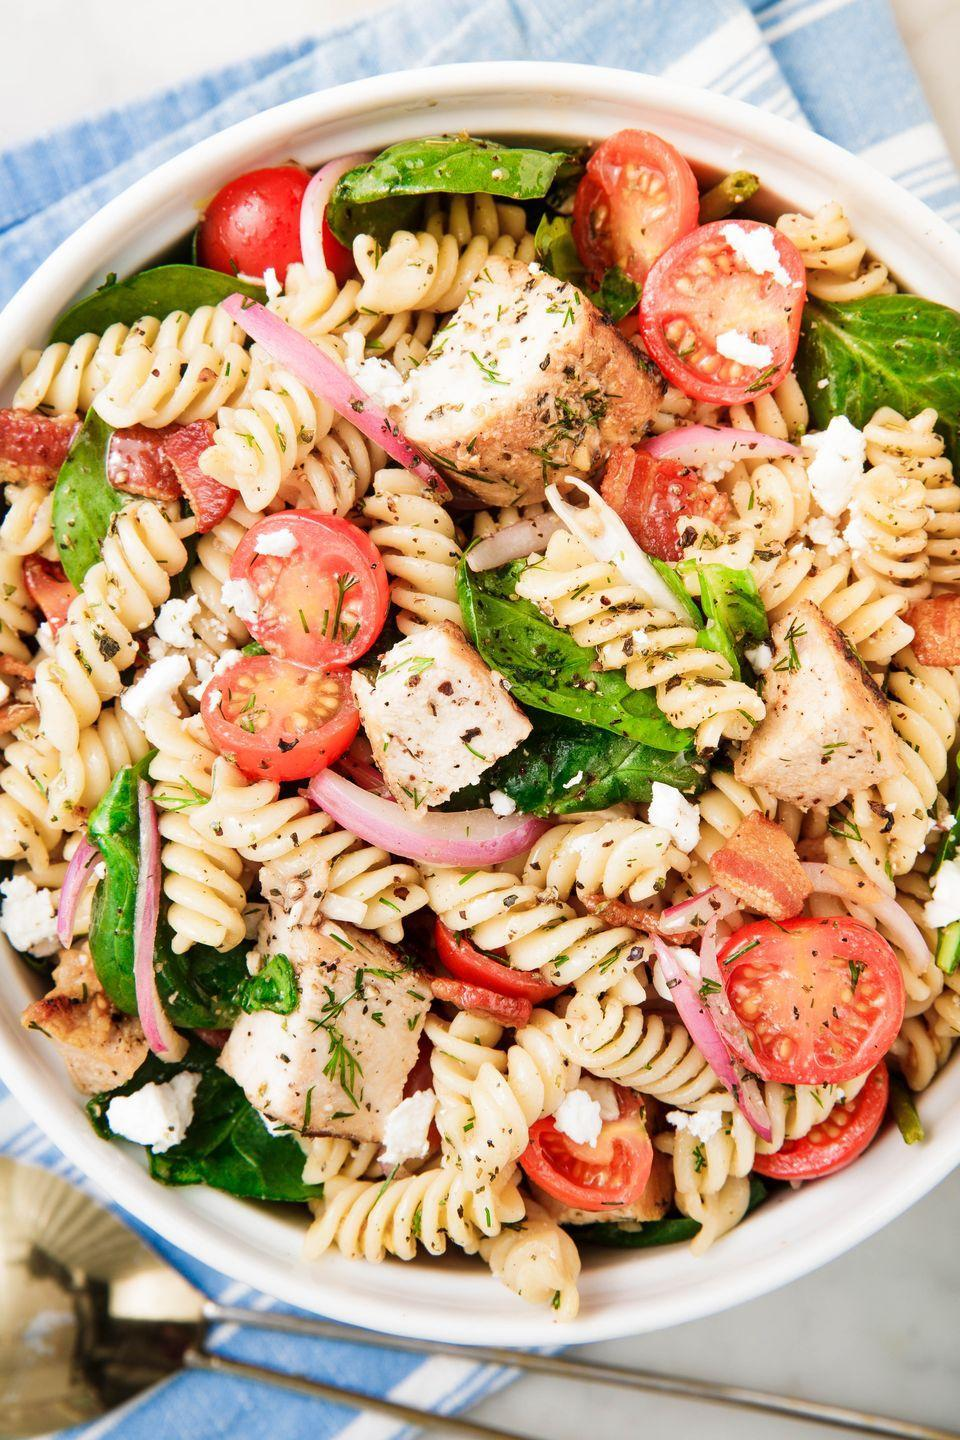 "<p>It might not be BBQ season yet, but this pasta salad will get you all geared up.</p><p>Get the recipe from <a href=""https://www.delish.com/cooking/recipe-ideas/a25136514/chicken-pasta-salad/"" rel=""nofollow noopener"" target=""_blank"" data-ylk=""slk:Delish"" class=""link rapid-noclick-resp"">Delish</a>.</p>"